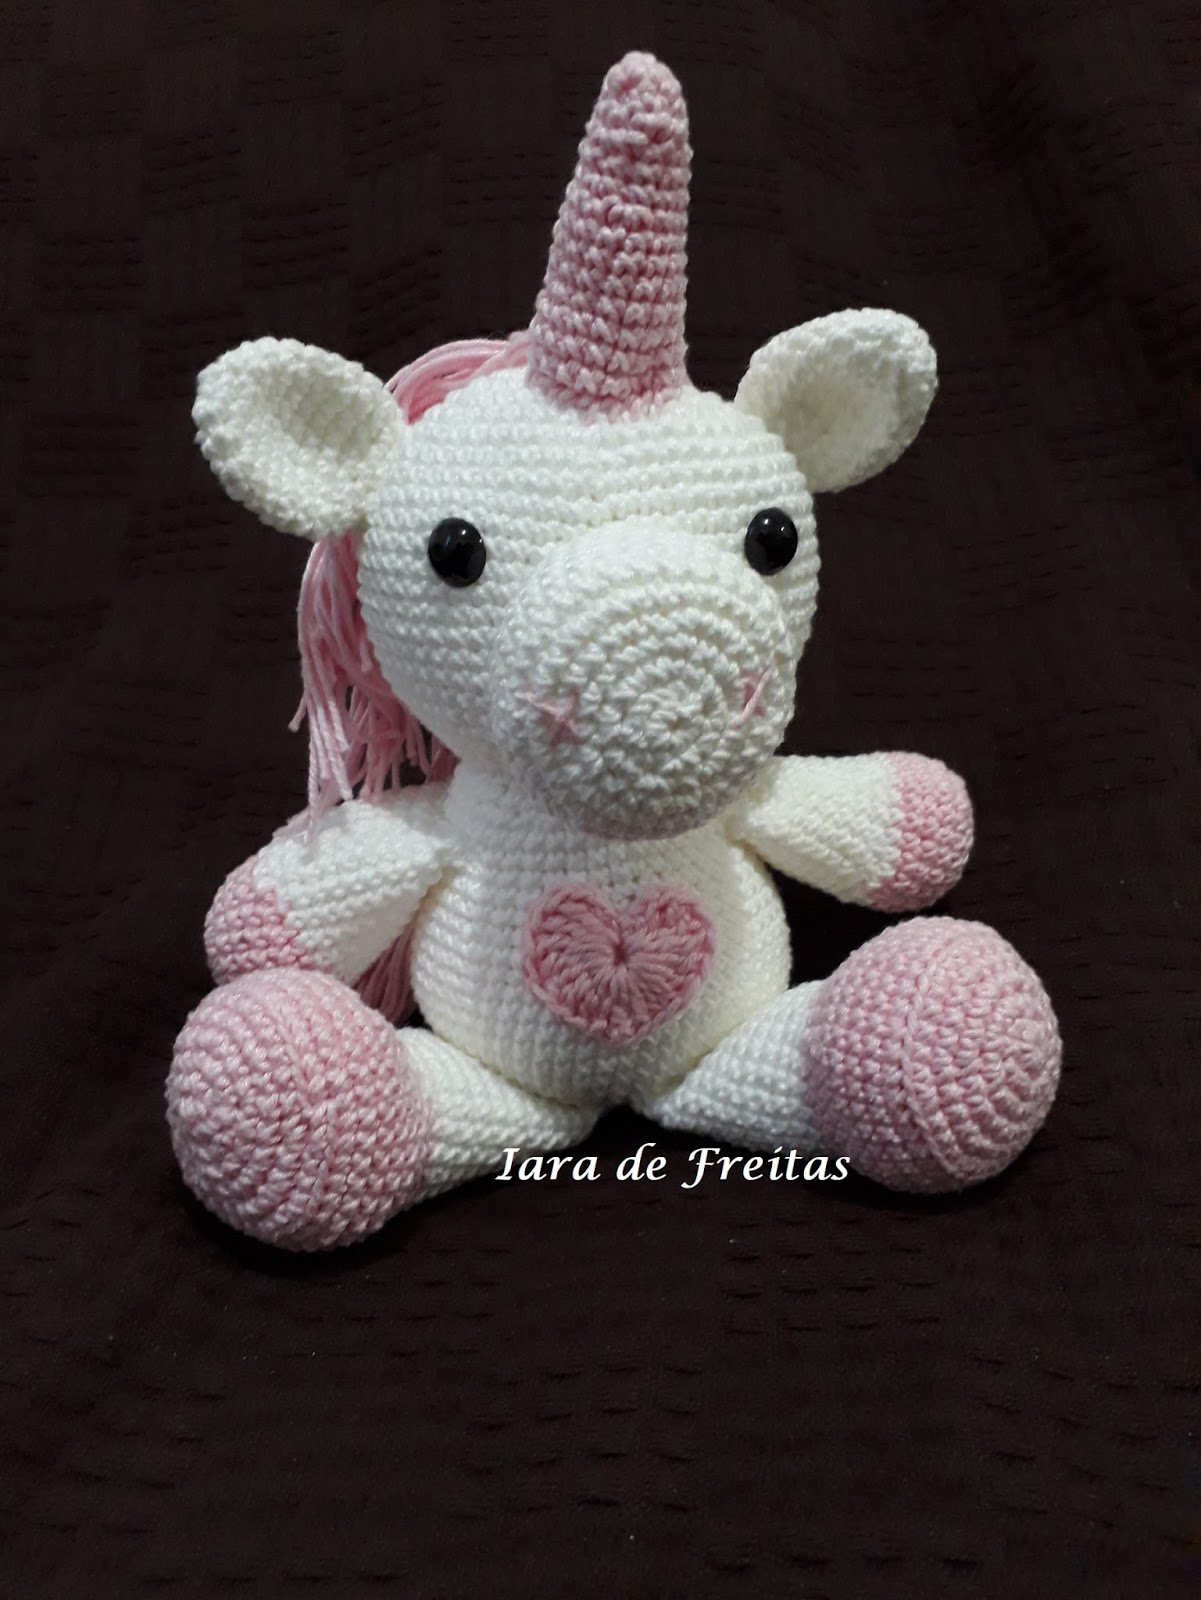 Unicorn Crochet Pattern Ideas You'll Love | Fazer croche, Crochê ... | 1600x1201